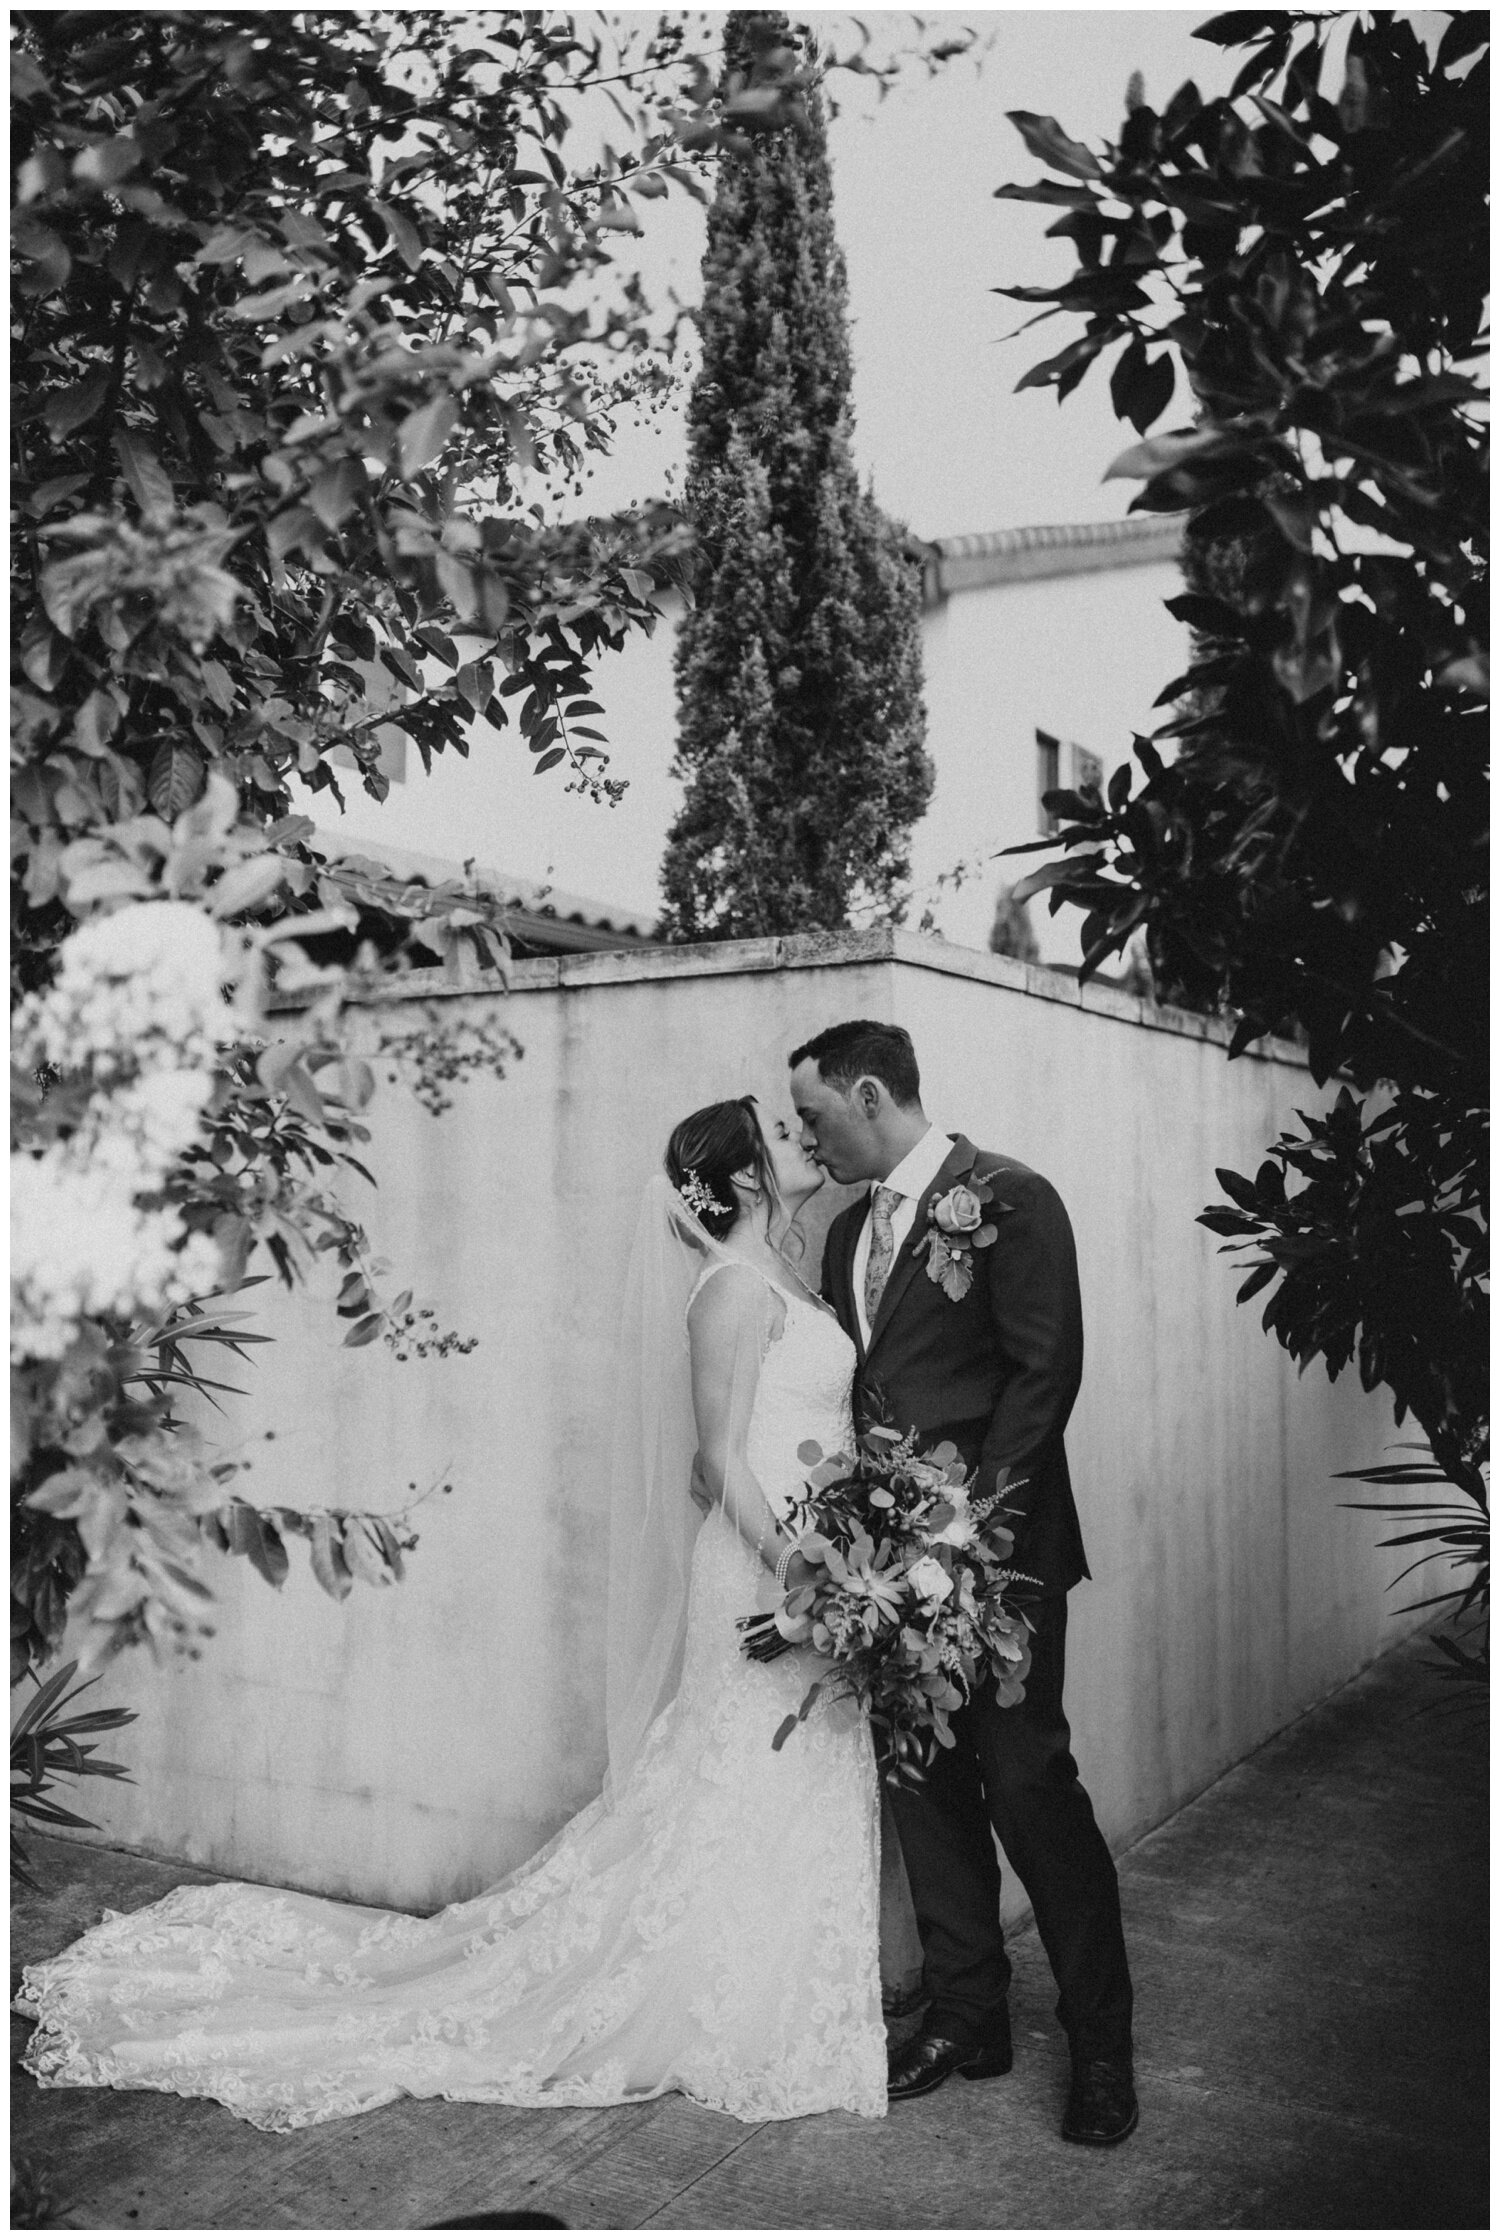 Modern Wedding at Ma Maison in Dripping Springs, Austin, Texas (Joshua and Parisa – Austin Wedding Photographer)_0051.jpg